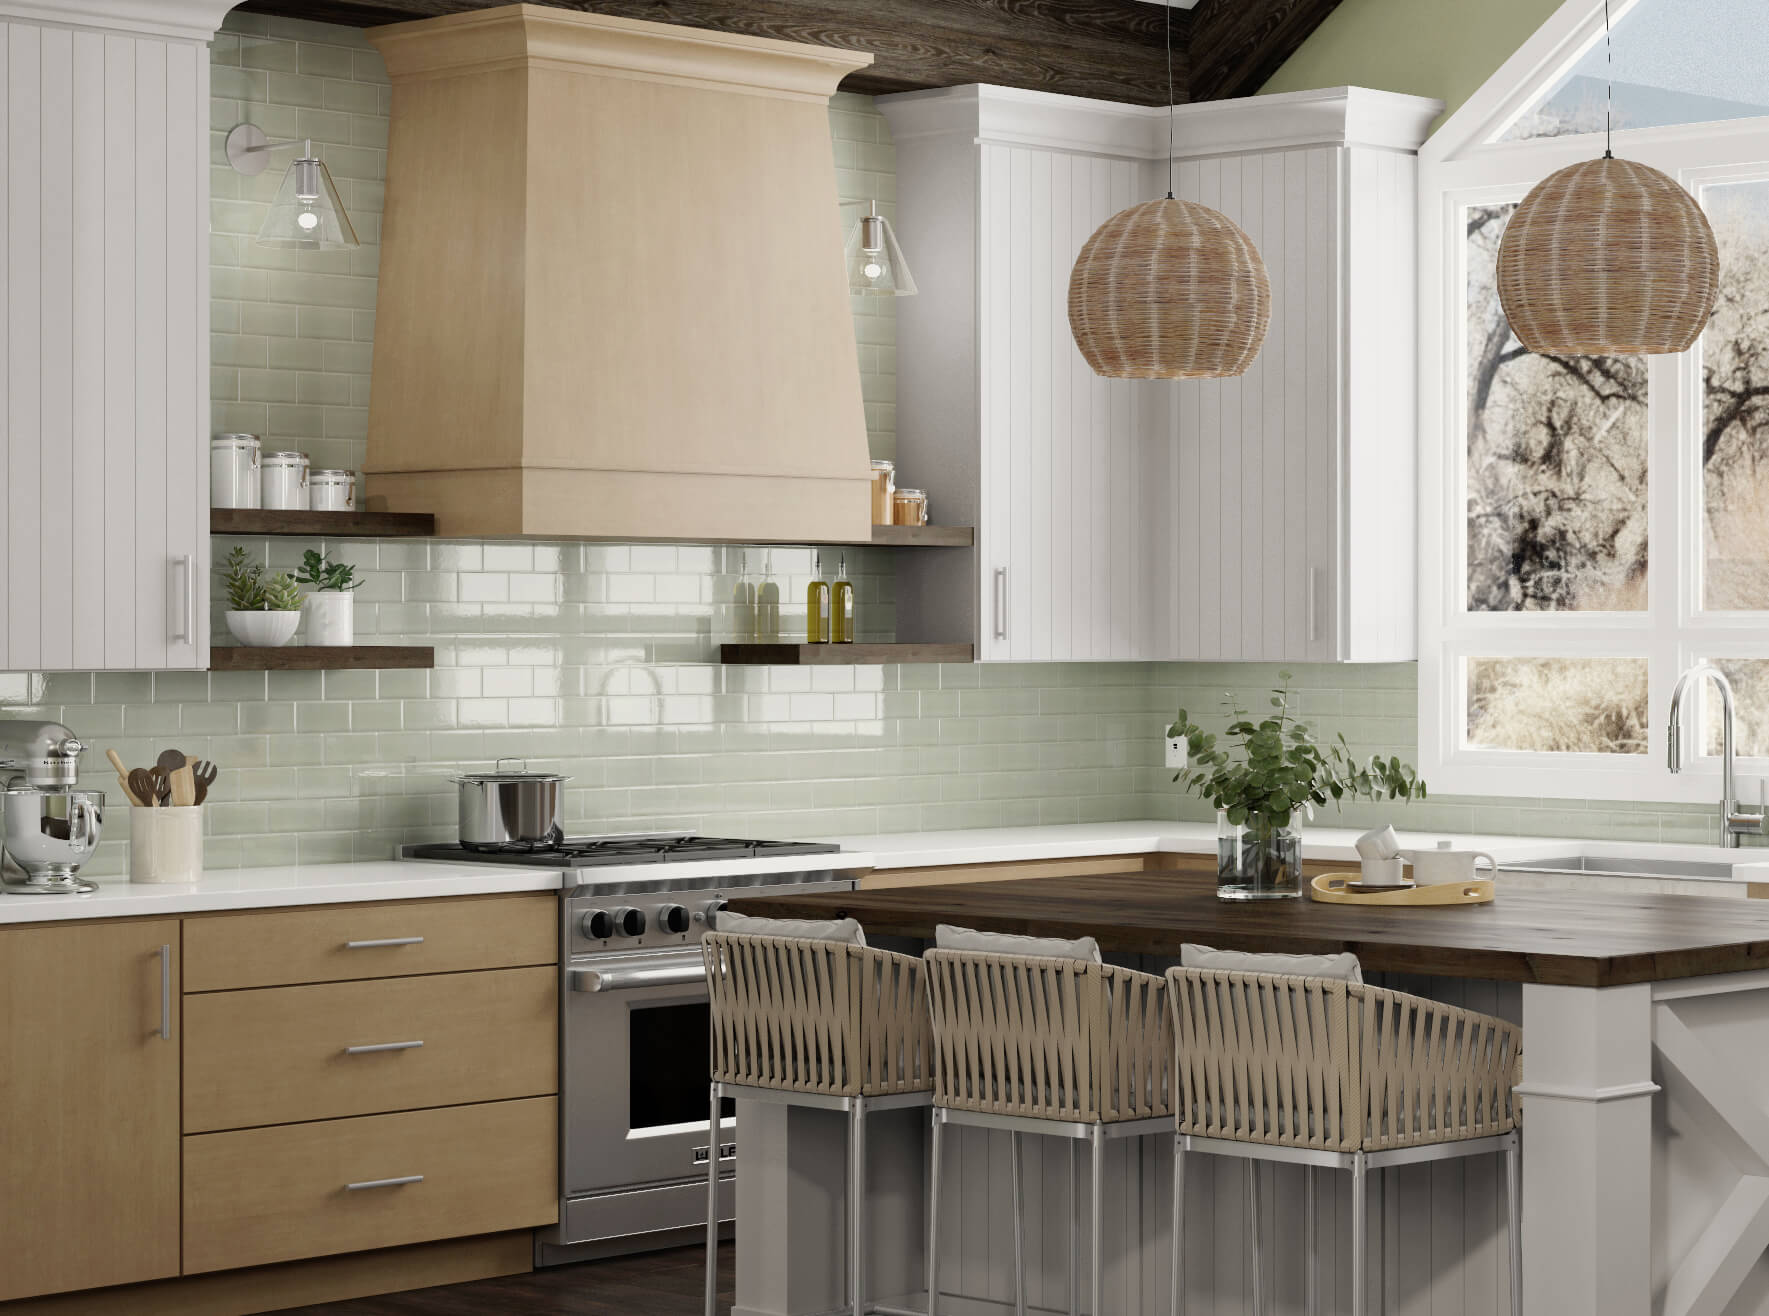 A drop-gorgeous modern farmhouse kitchen that was remodeled with a lightly stained maple wood hood and stainless steel kitchen appliances. This kitchen features white painted shiplap inspired cabinet doors and solid slab cabinet doors in light stained maple.